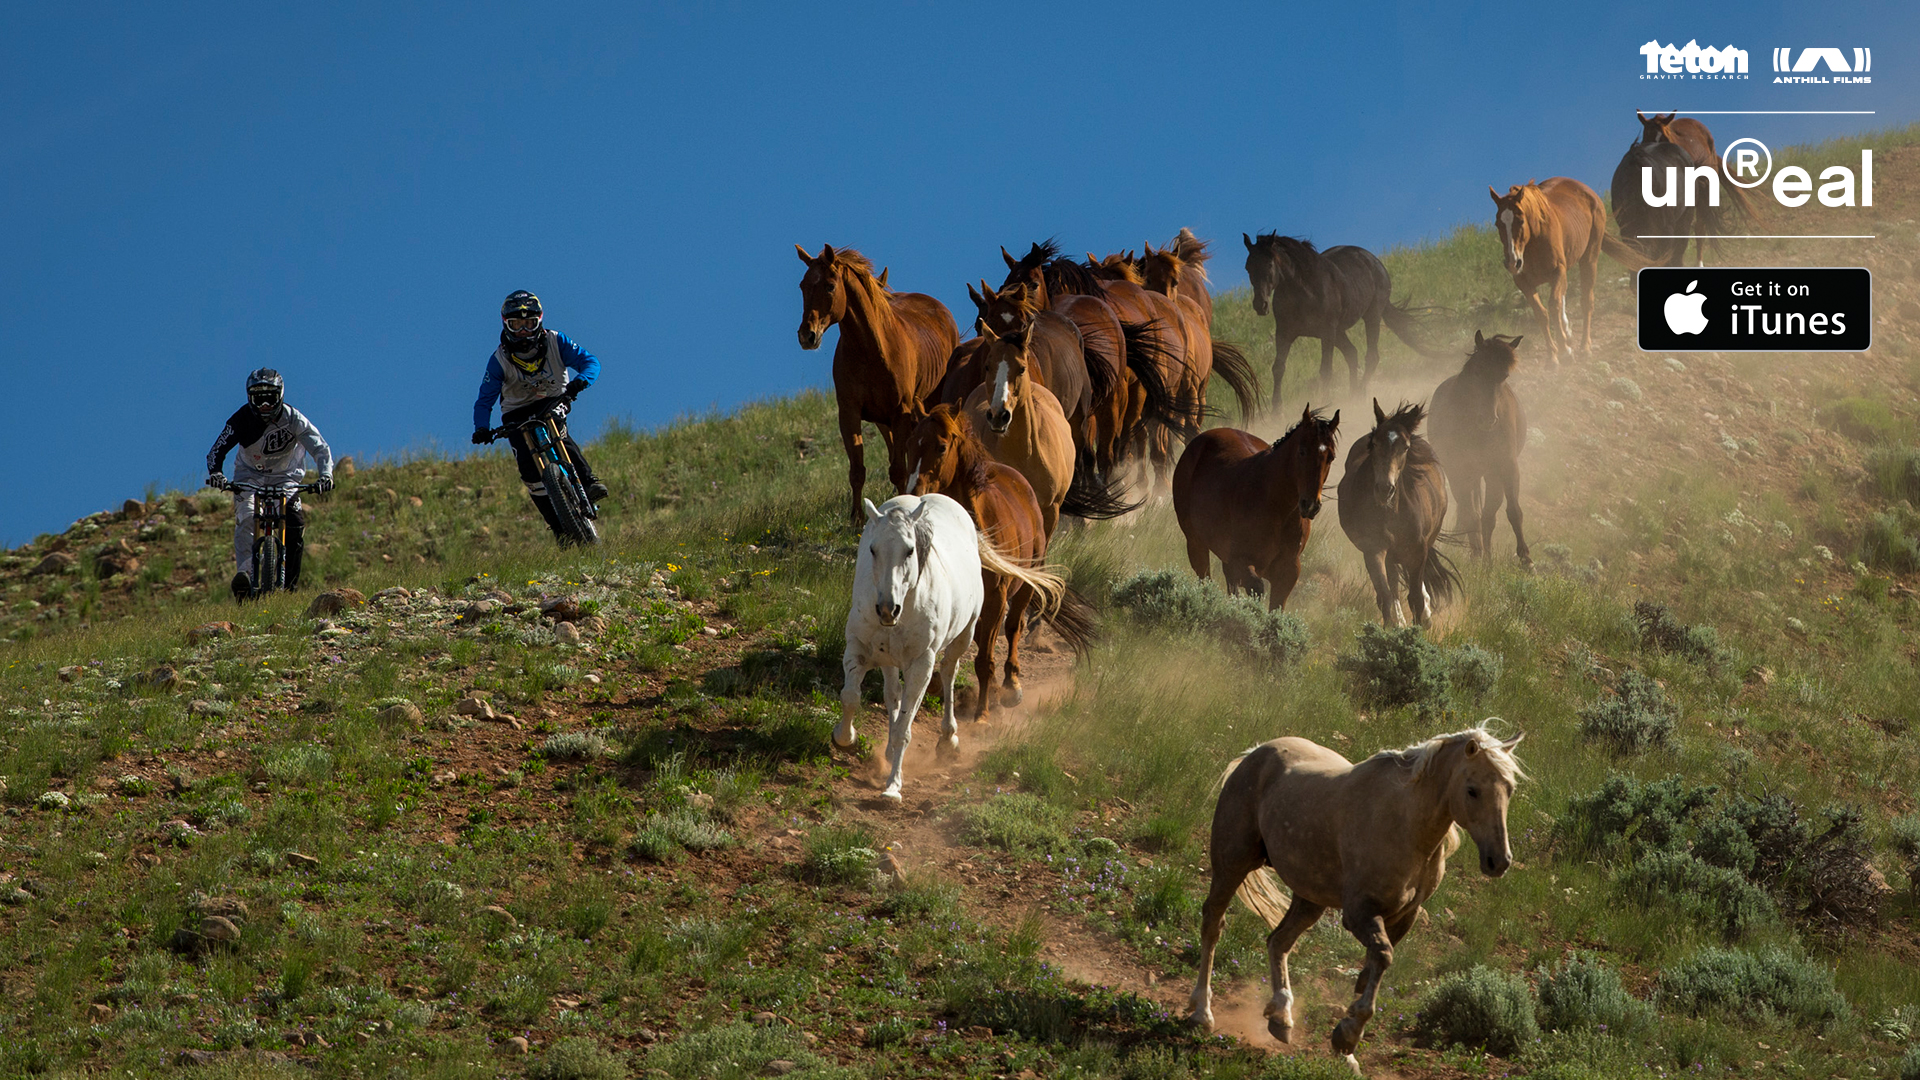 tgr-anthill-unreal-pr-images-bikers-with-horses